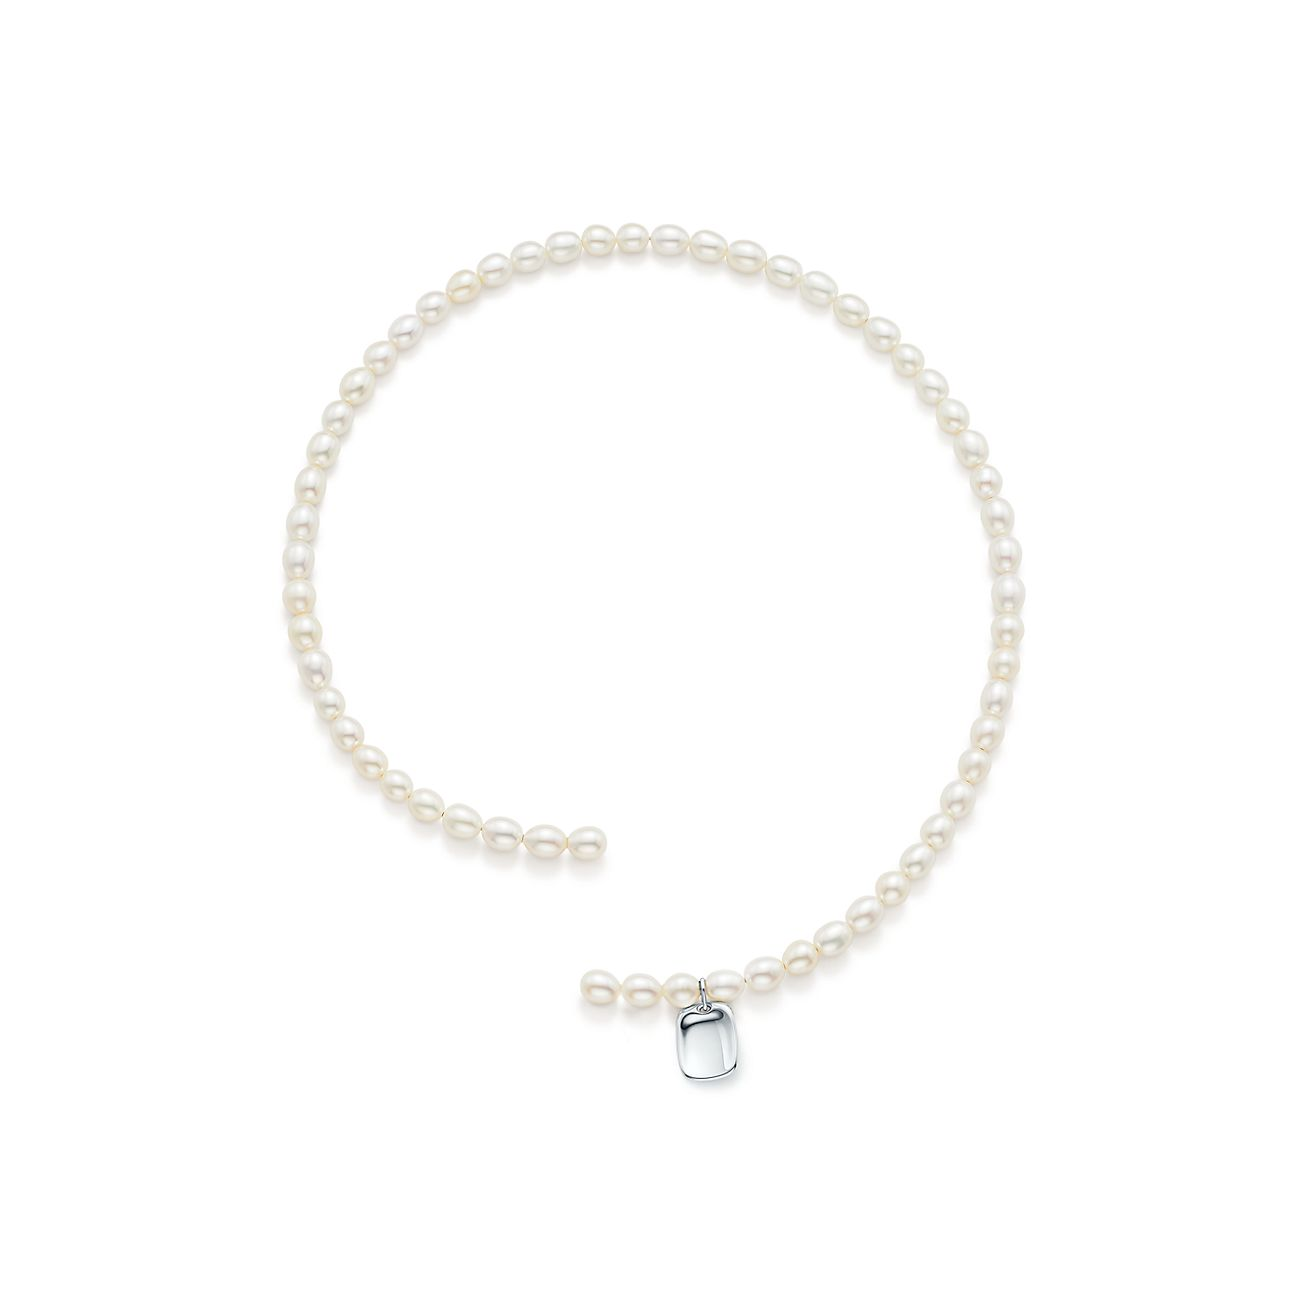 Elsa Peretti freshwater pearl necklace with sterling silver star charm Tiffany & Co.